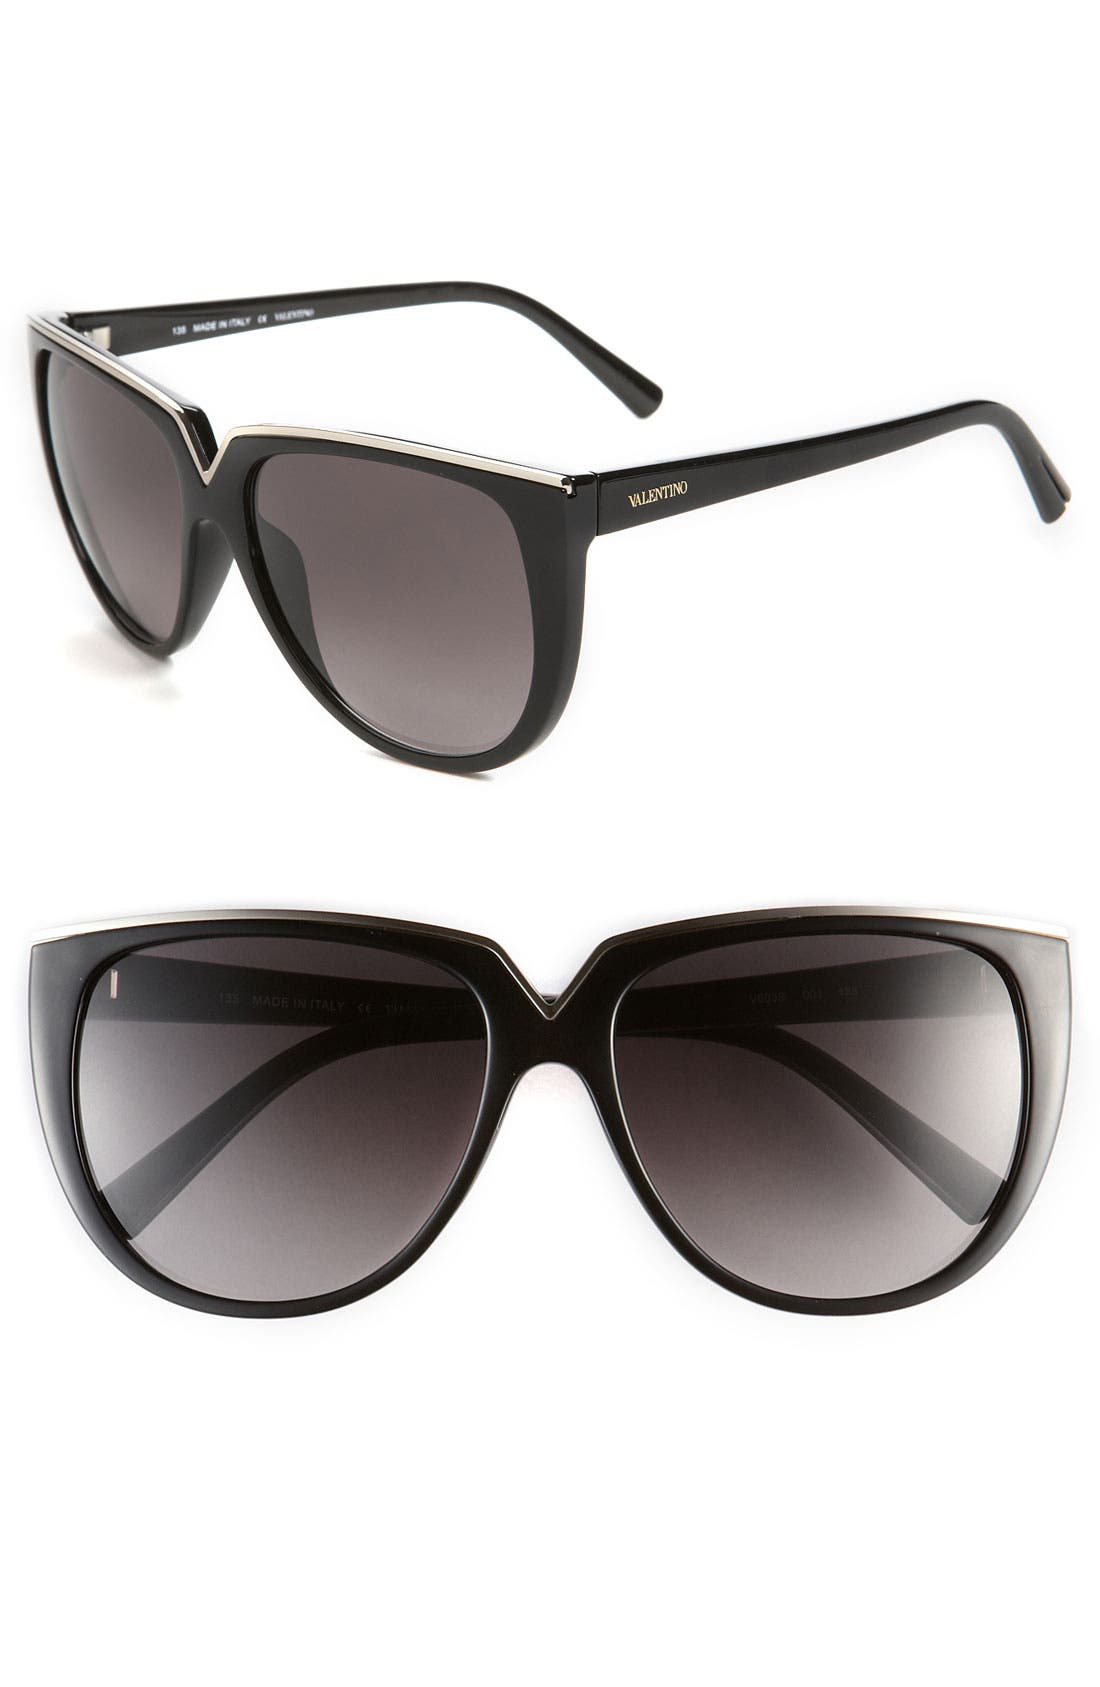 Alternate Image 1 Selected - Valentino 57mm Retro Sunglasses